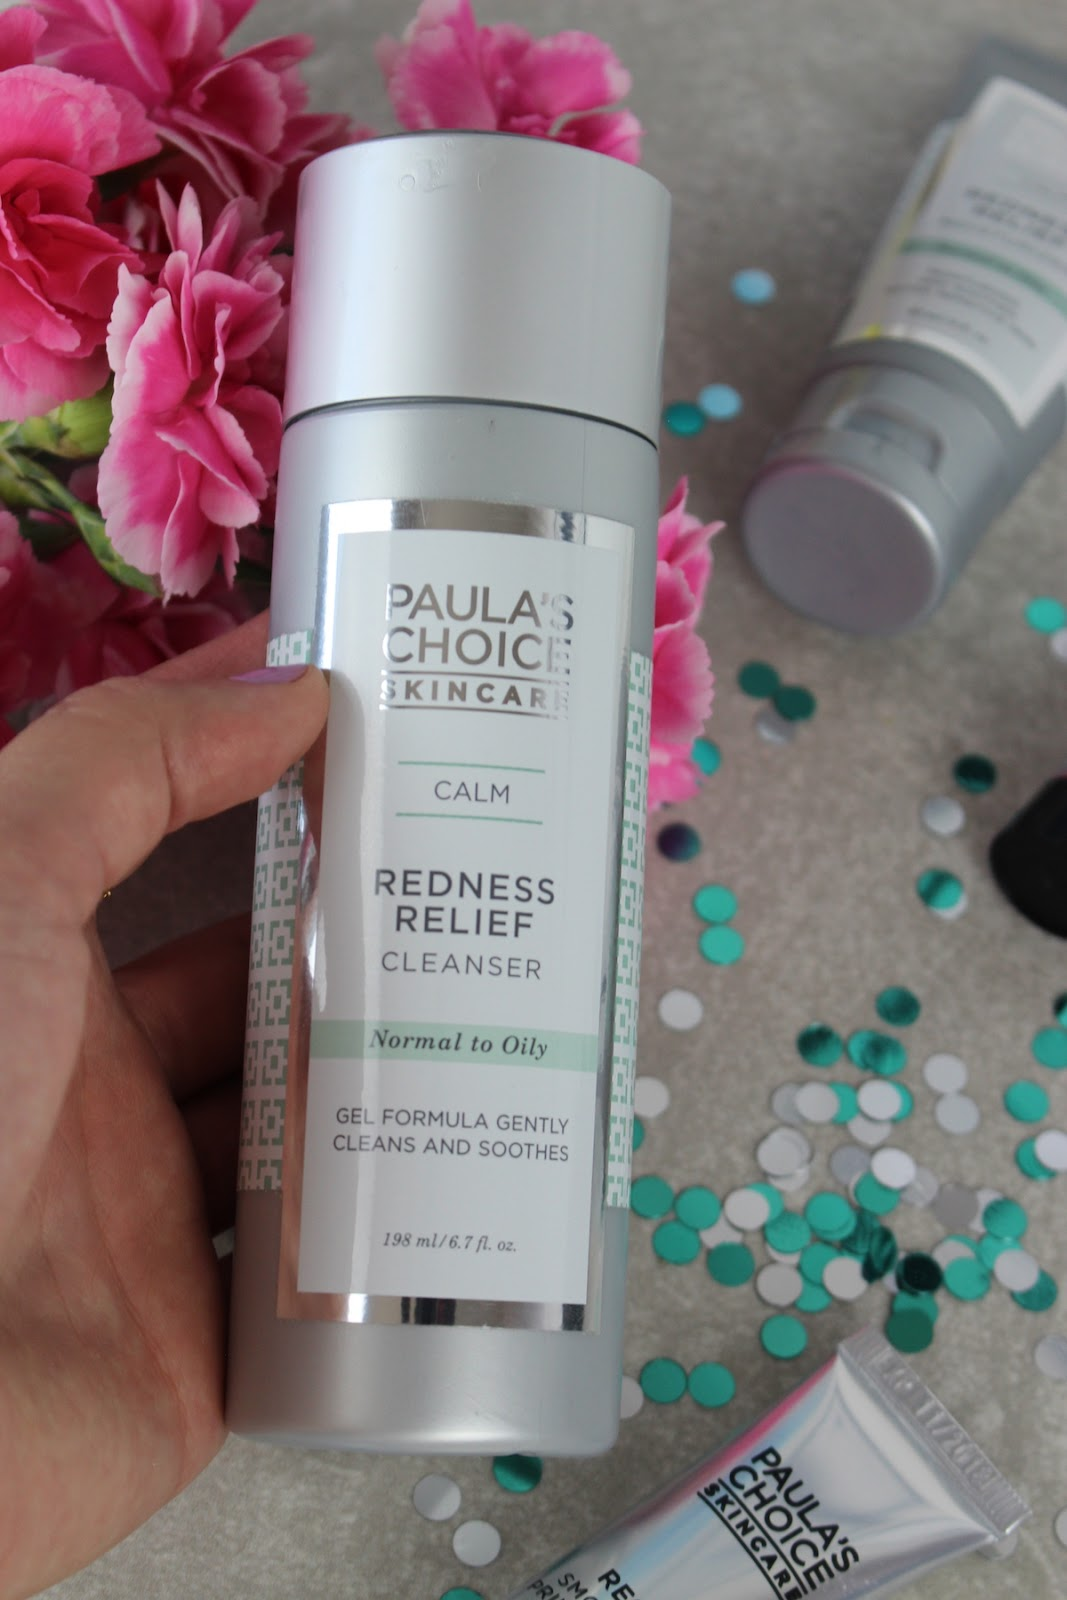 This is a close up of Paula's Choice Redness Relief Cleanser , surrounded by beautiful pink flowers.